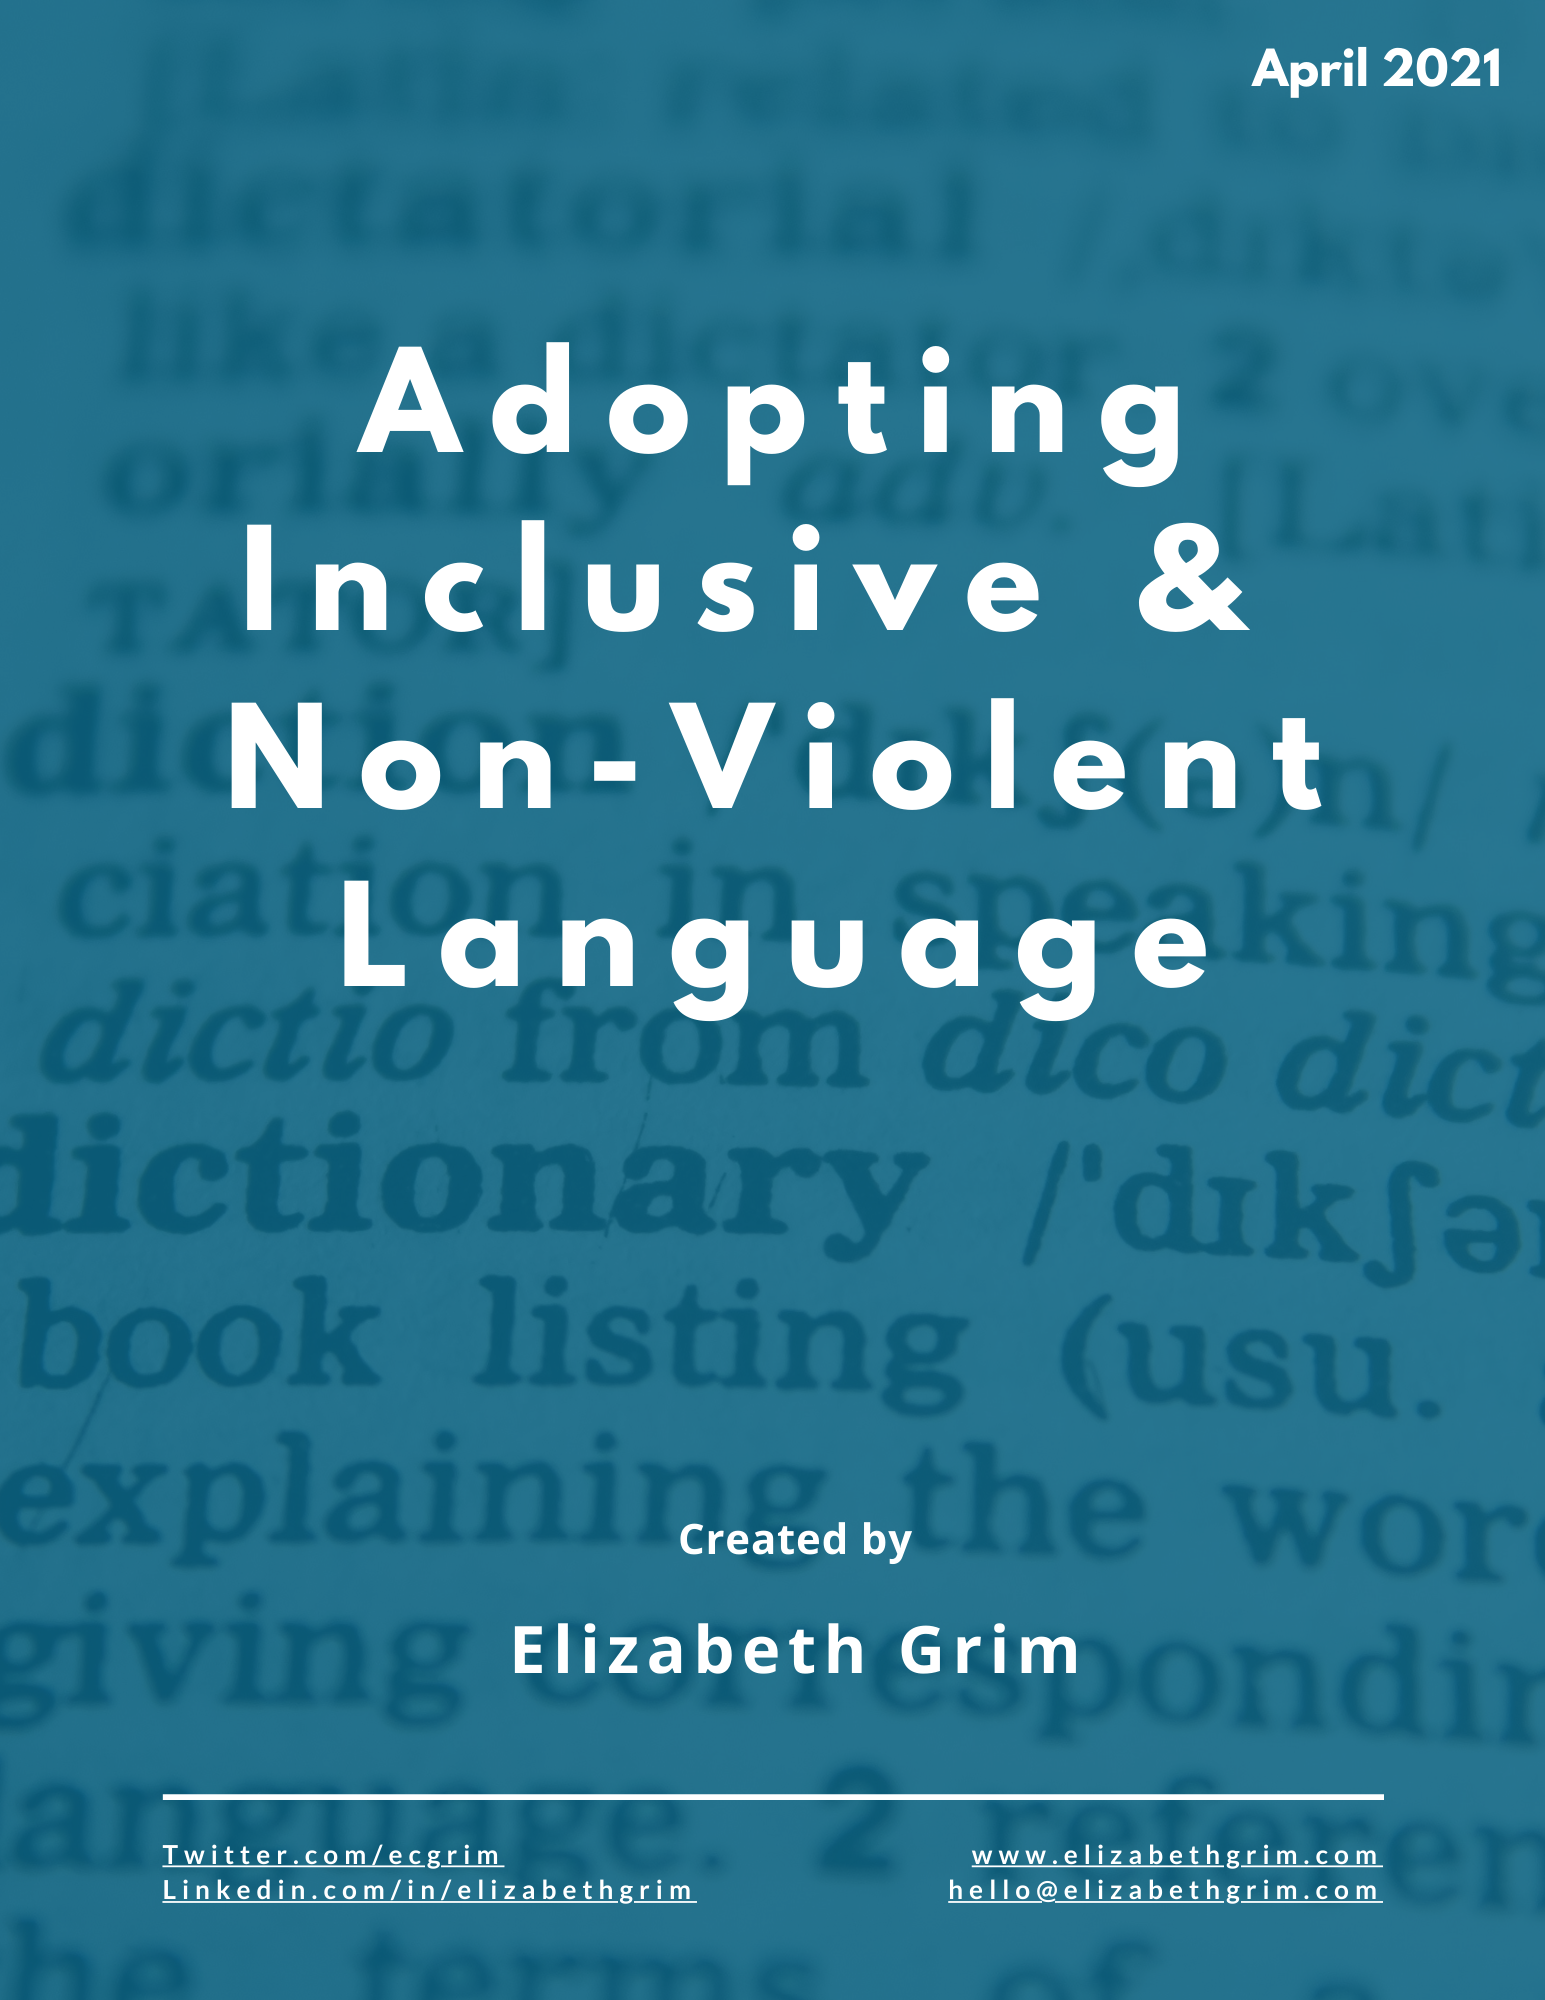 Adopting inclusive and non-violent language handout